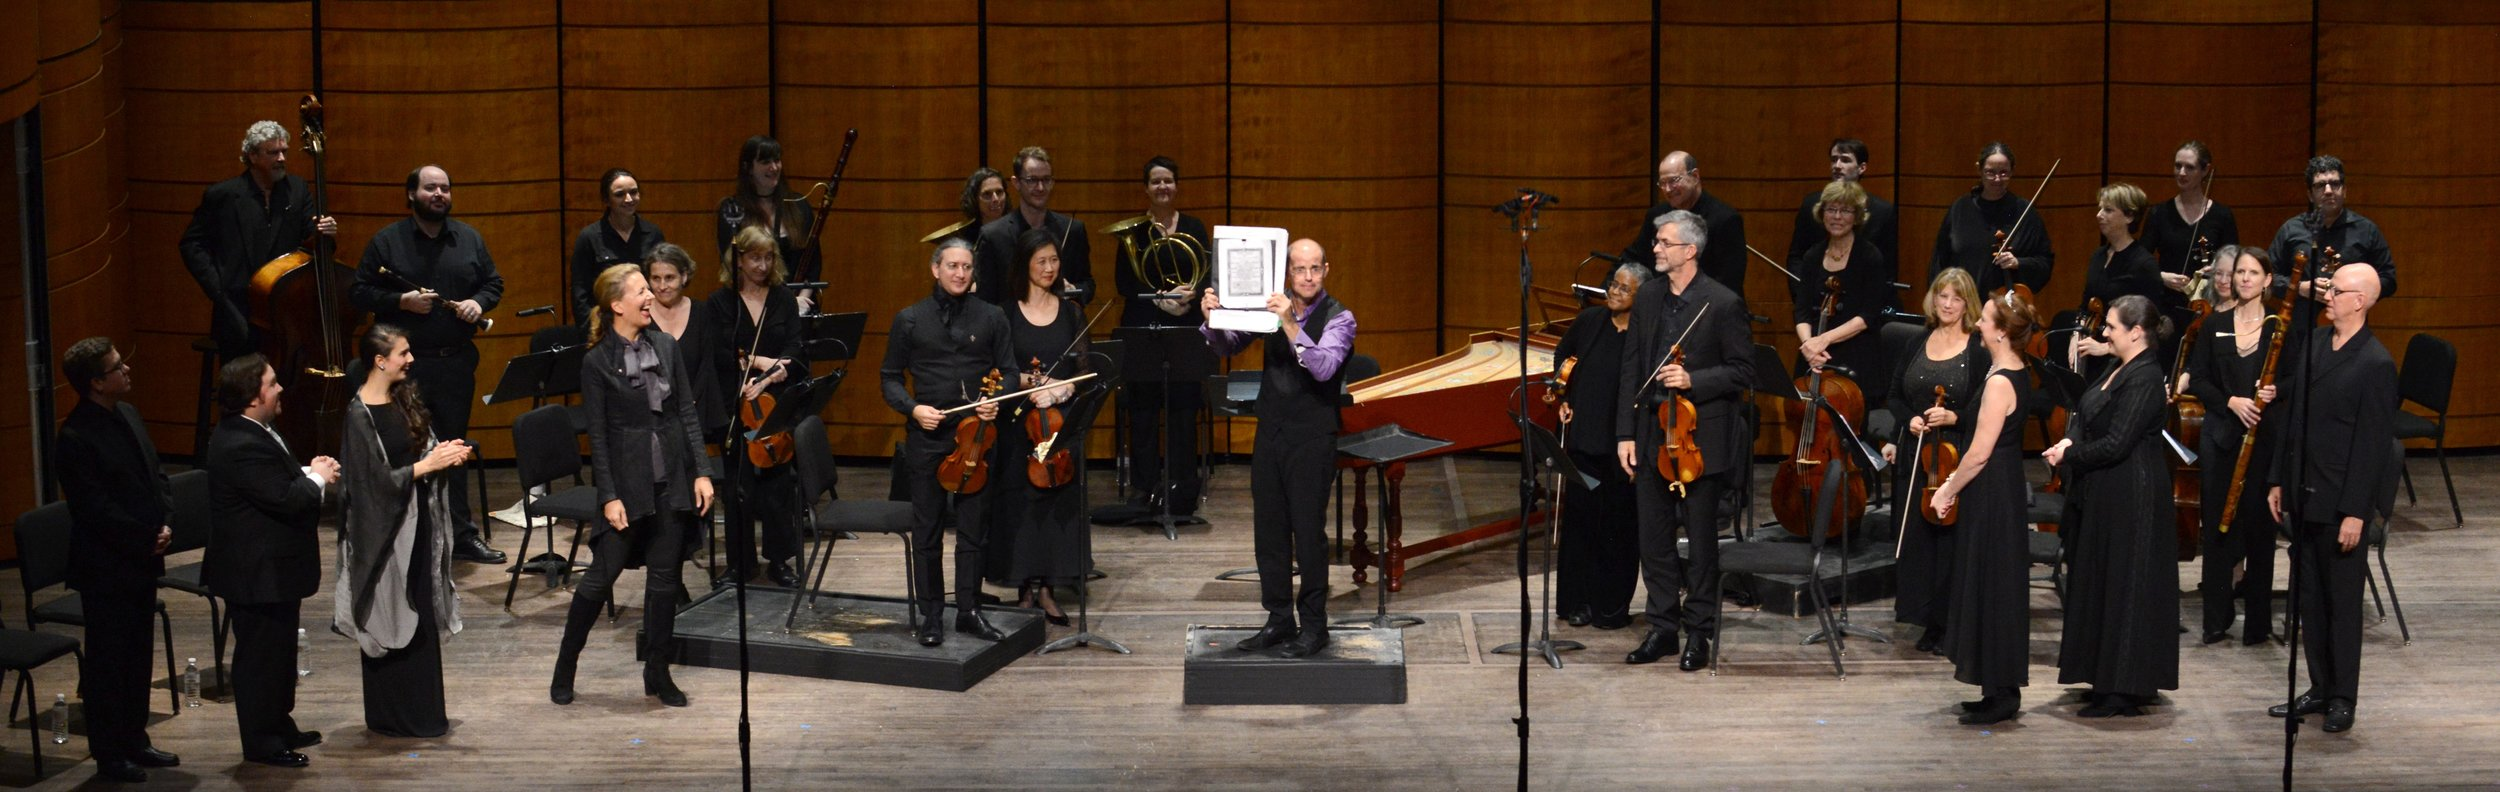 In a curtain call for  Cerere Placata 's first performance in 246 years, at center, Conductor Charles Brink holds up his copy of Jommelli's score. Photo by Russell Hirshorn; courtesy of Opera Lafayette.